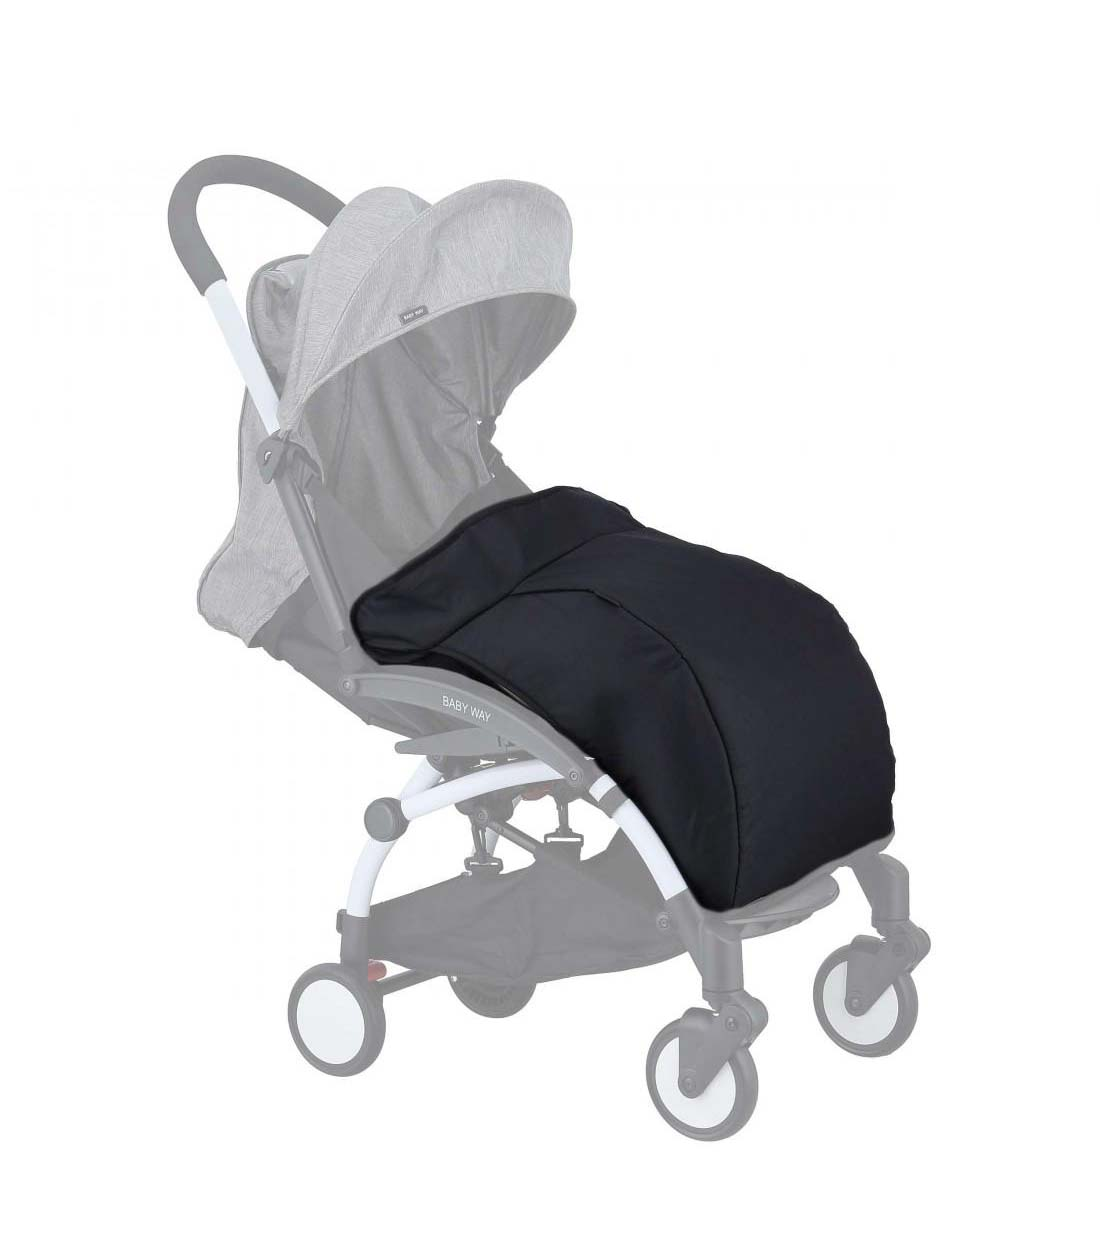 Cubre Pie Coche Paraguas Baby Way Bw-Cp01 Negro